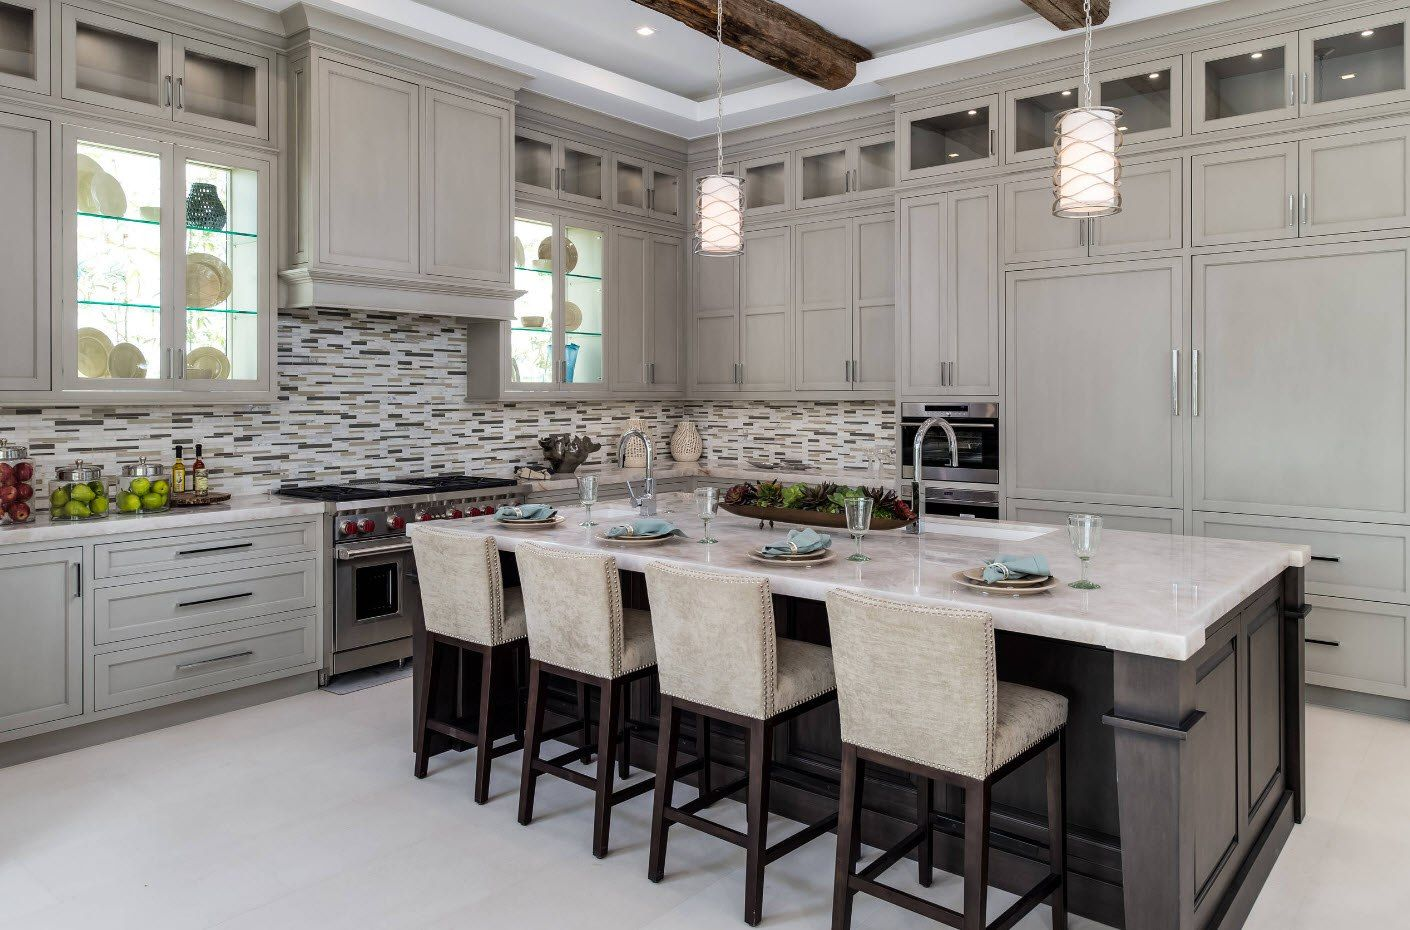 Kitchen with white facades and dotted splashback